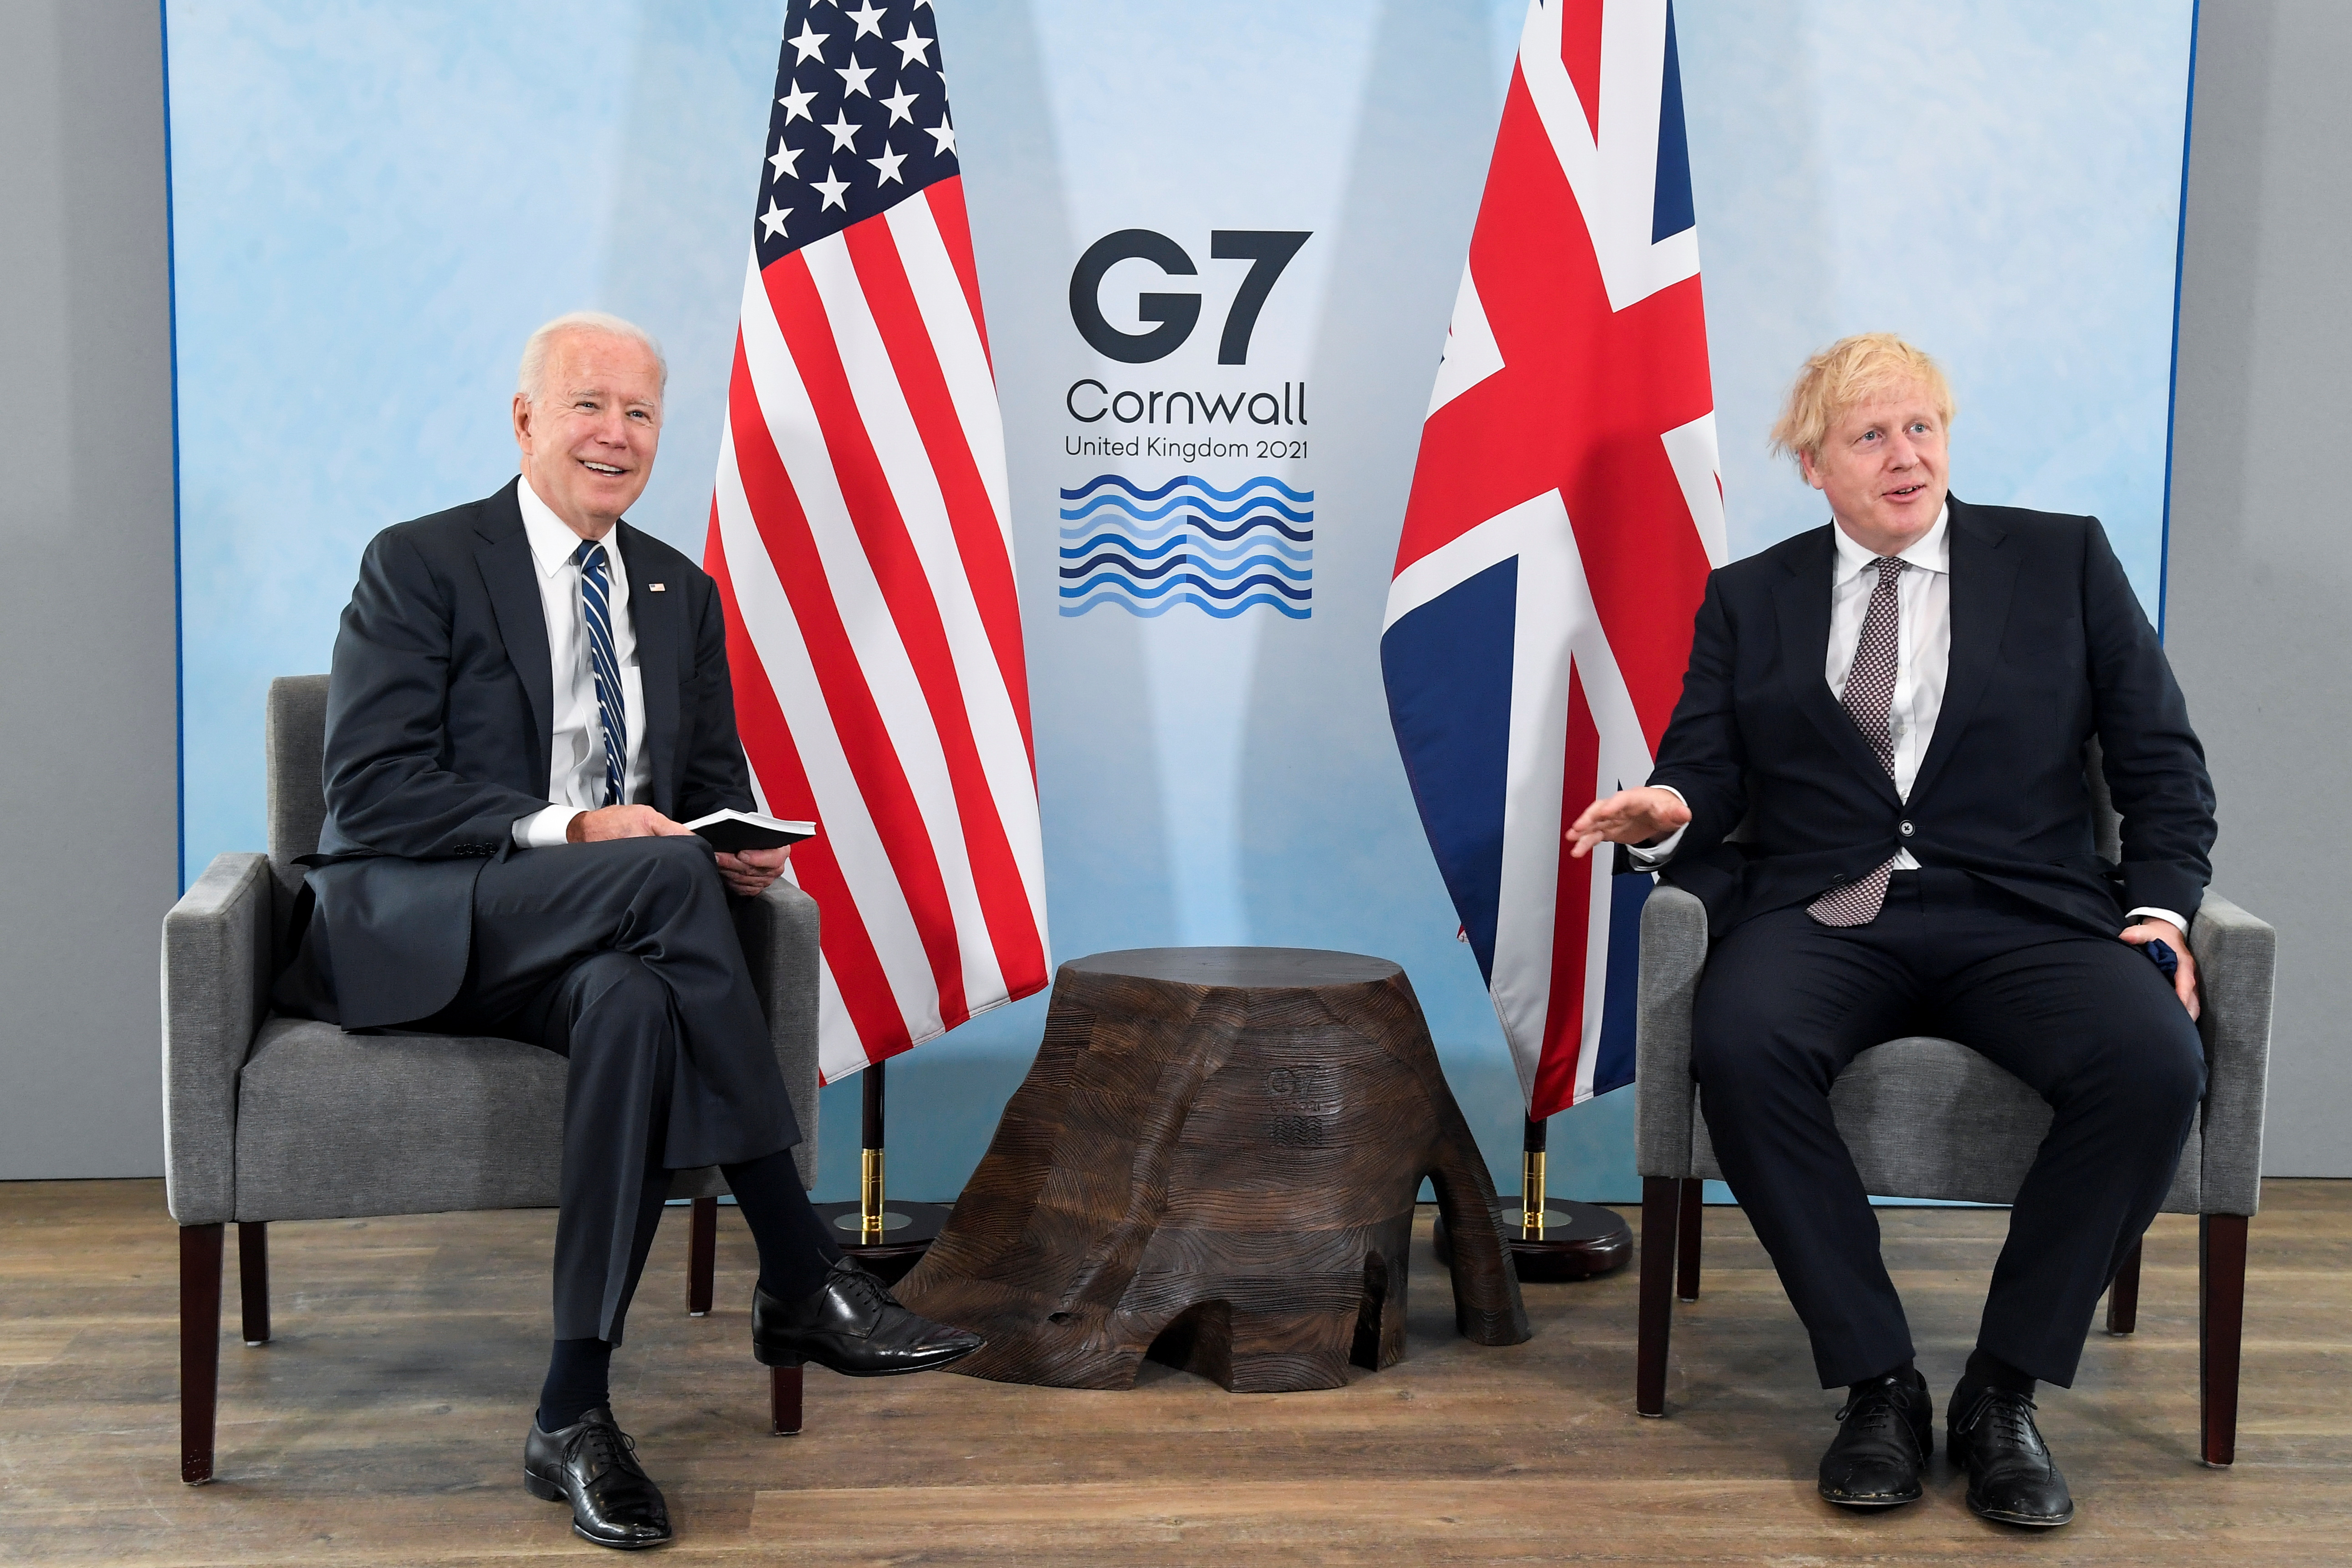 Britain's Prime Minister Boris Johnson meets with U.S. President Joe Biden, ahead of the G7 summit, at Carbis Bay, Cornwall, Britain June 10, 2021. REUTERS/Toby Melville/Pool